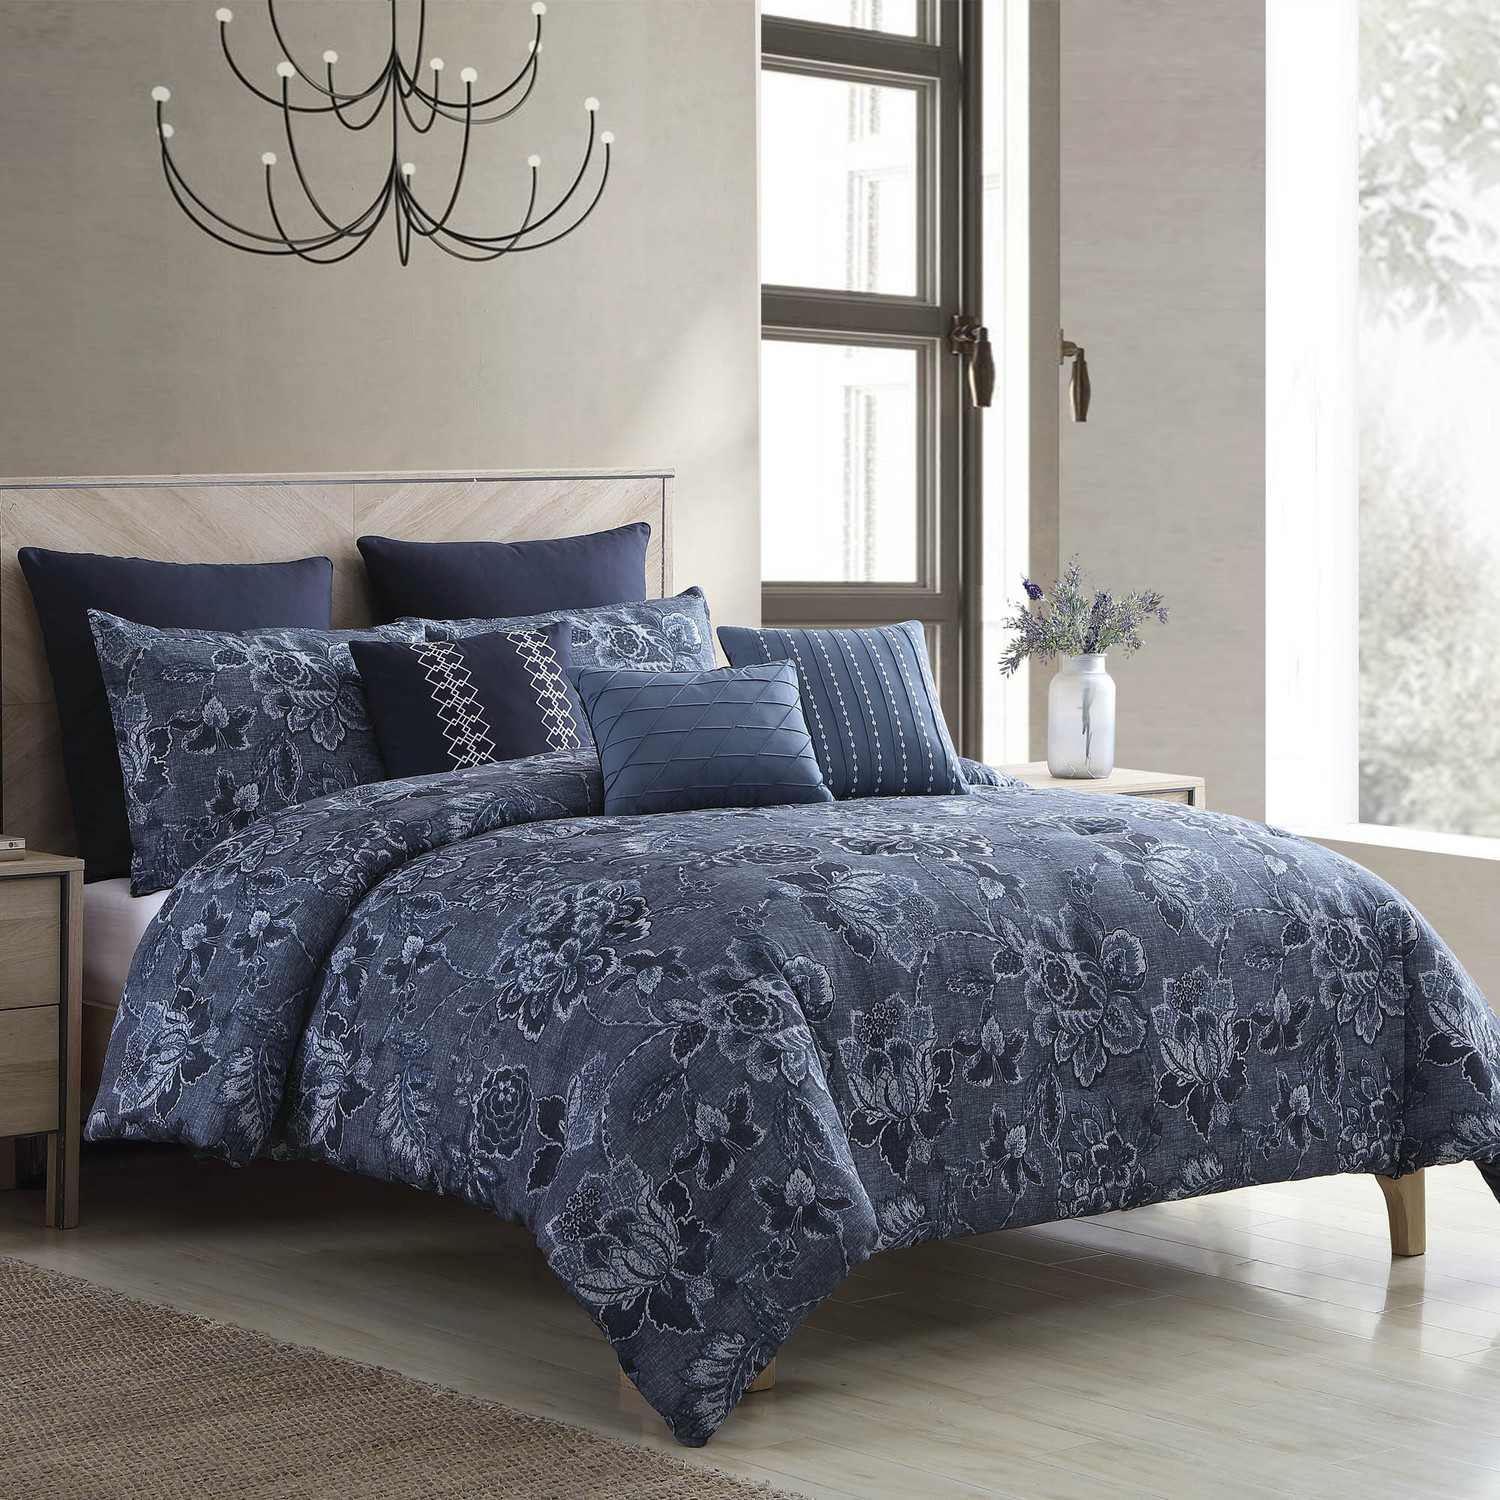 Monique by Riverbrook Home Bedding